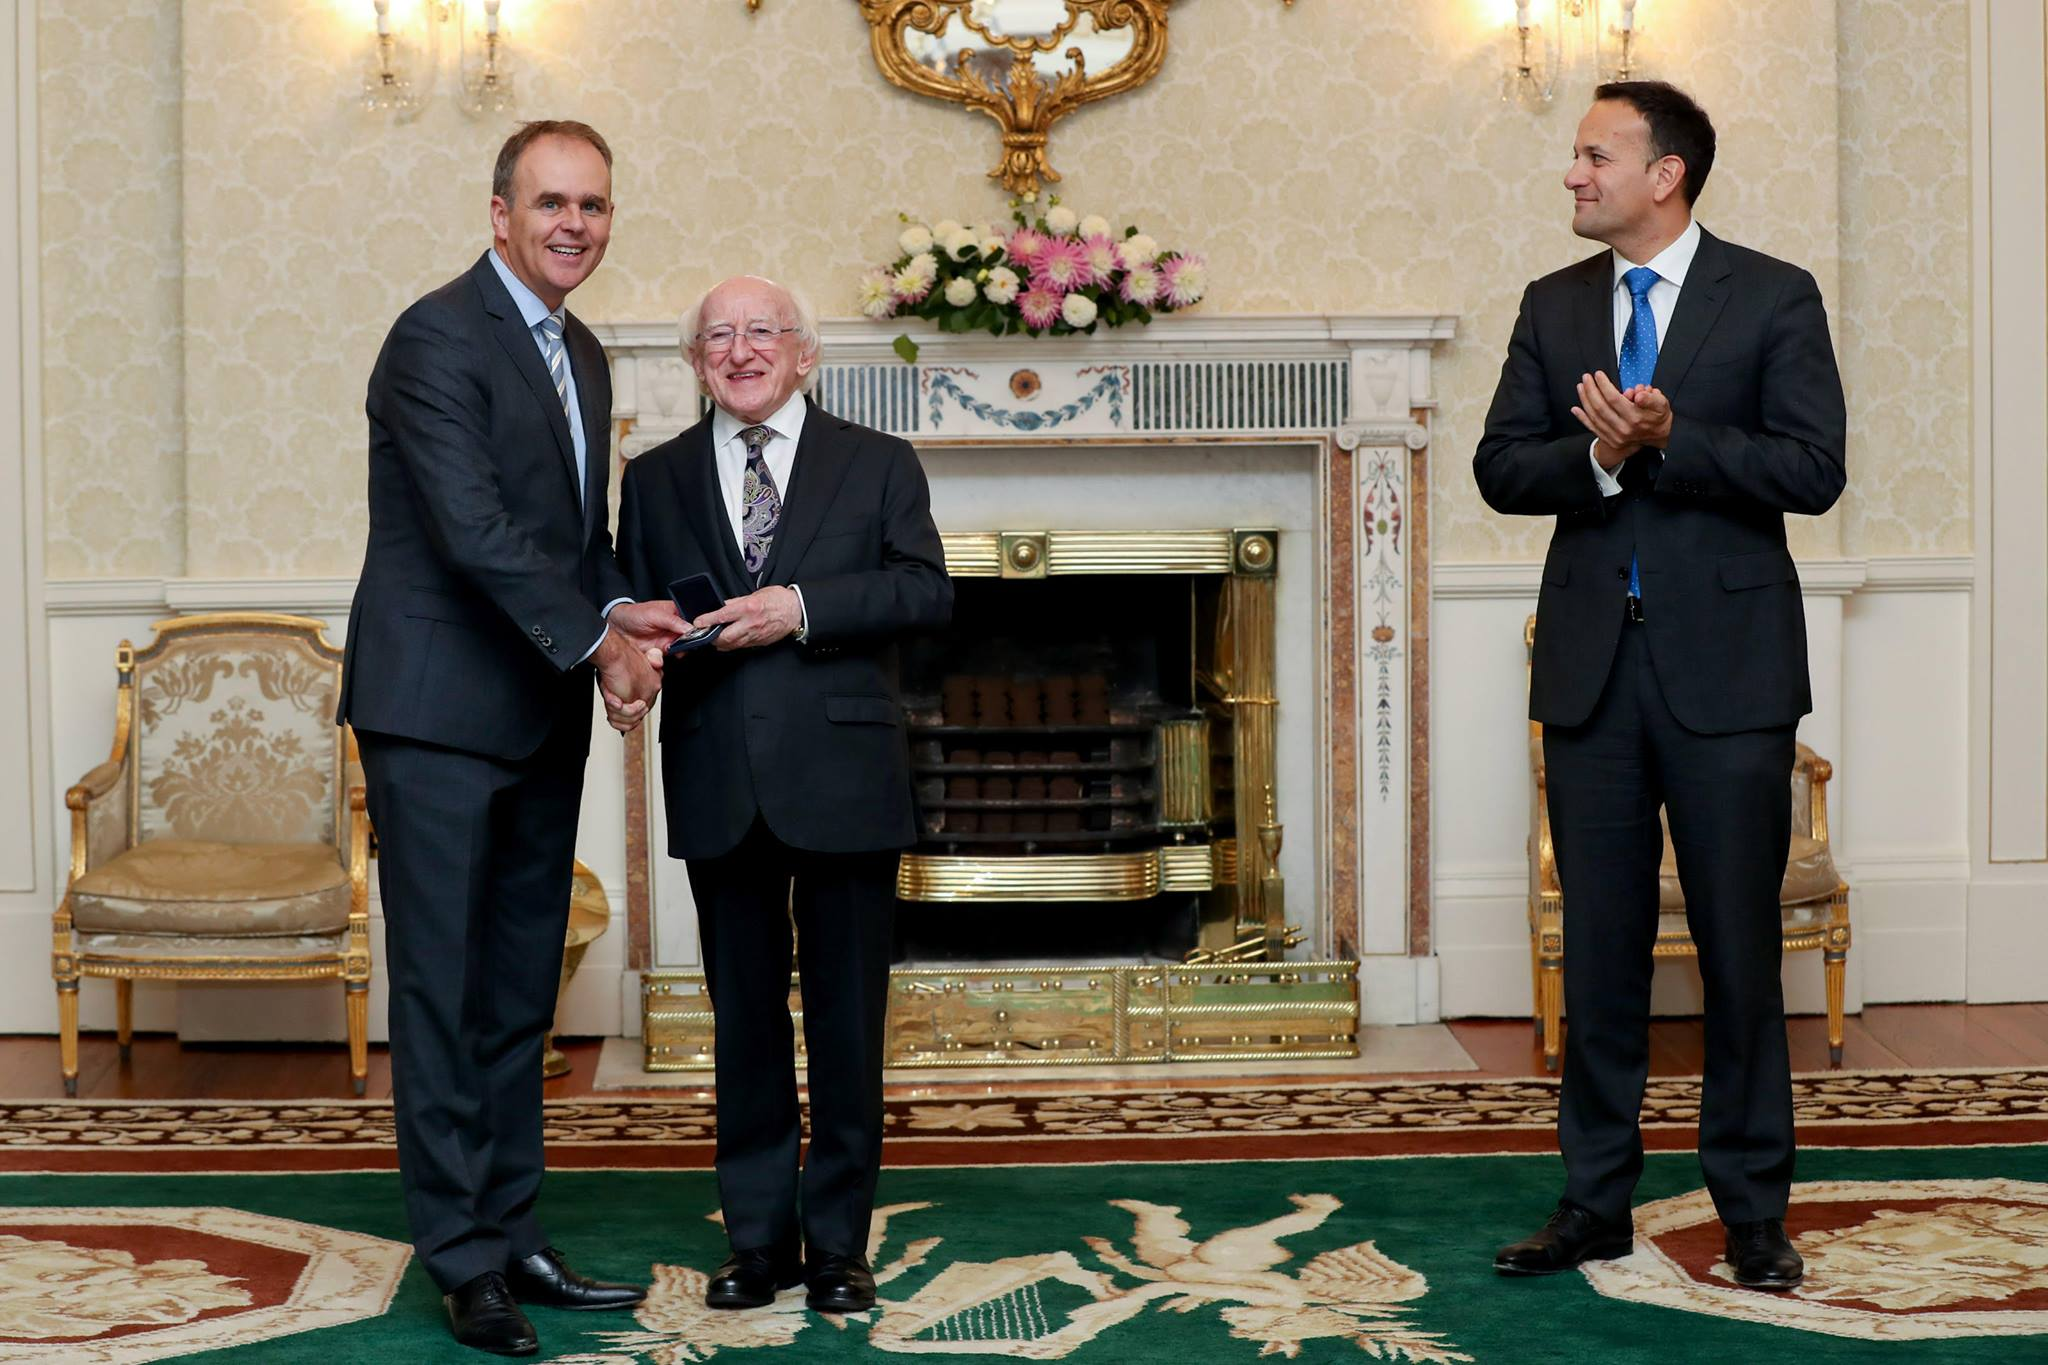 Joe McHugh TD (Minister for Education) gets his seal of office from President Higgins at Aras An Uachtarain watched by Taoiseach Leo Varadkar